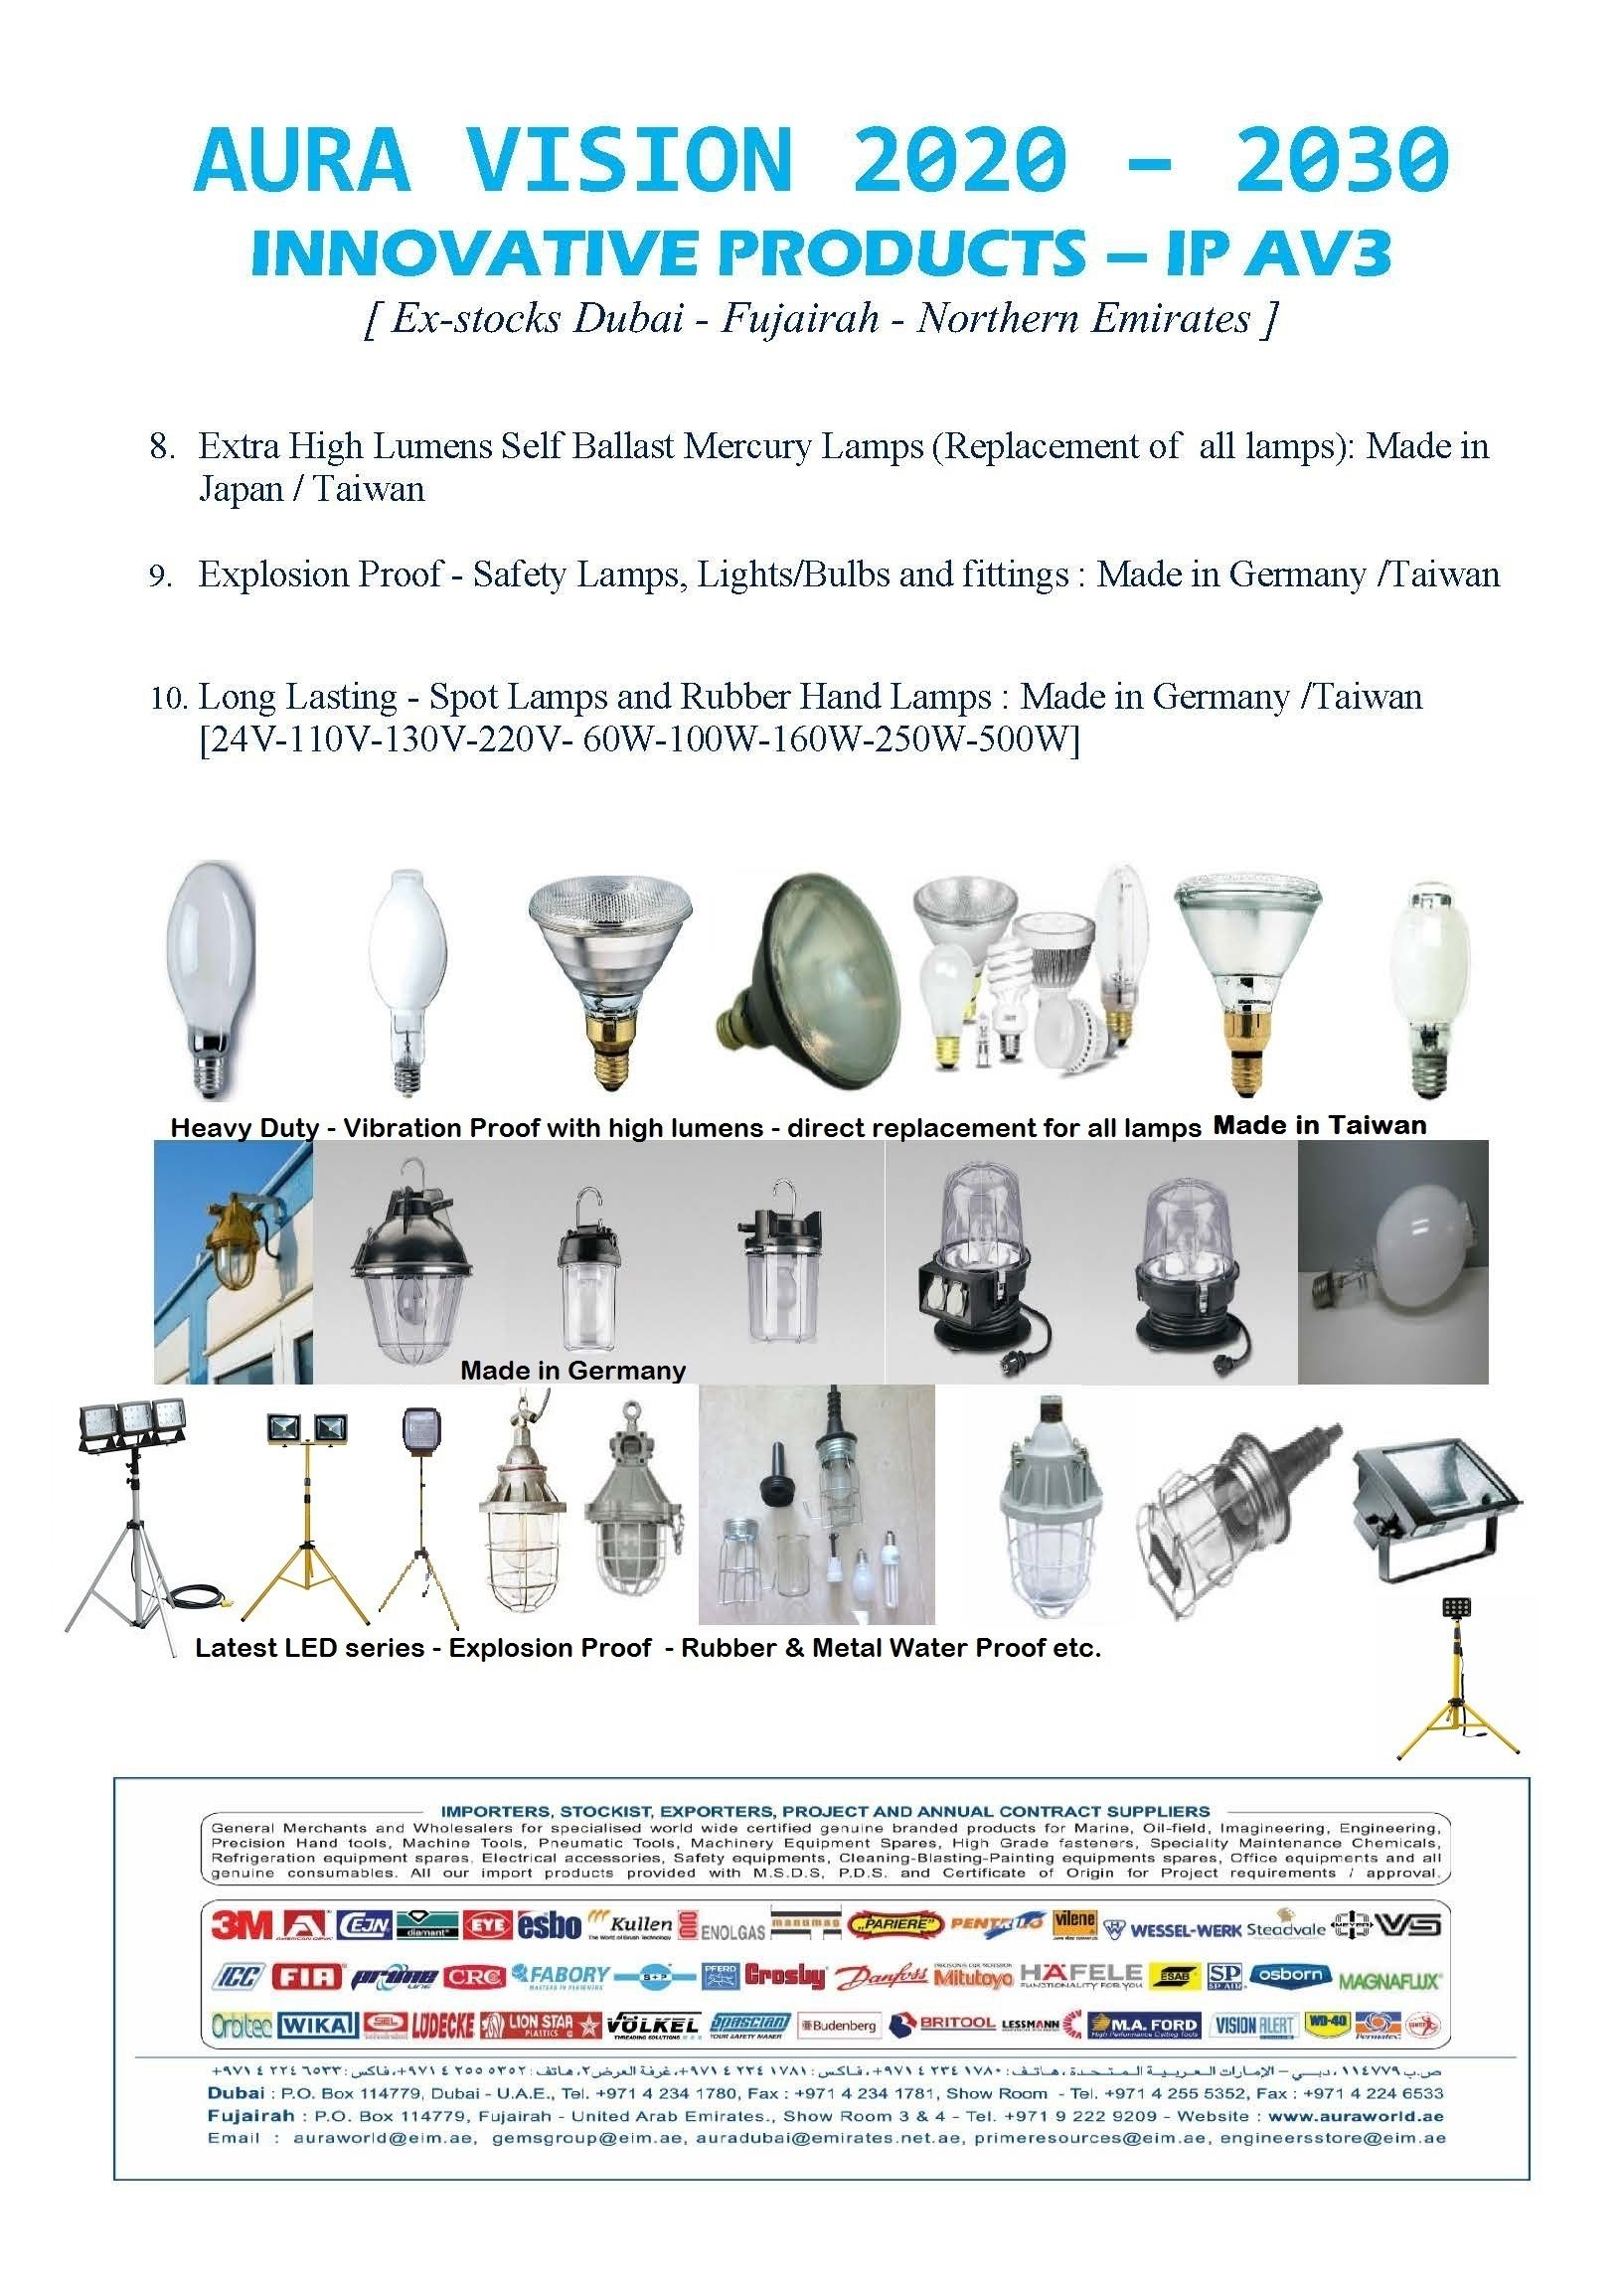 Extra High Lumens Lamps Fittings Made In Germany Made In Taiwan